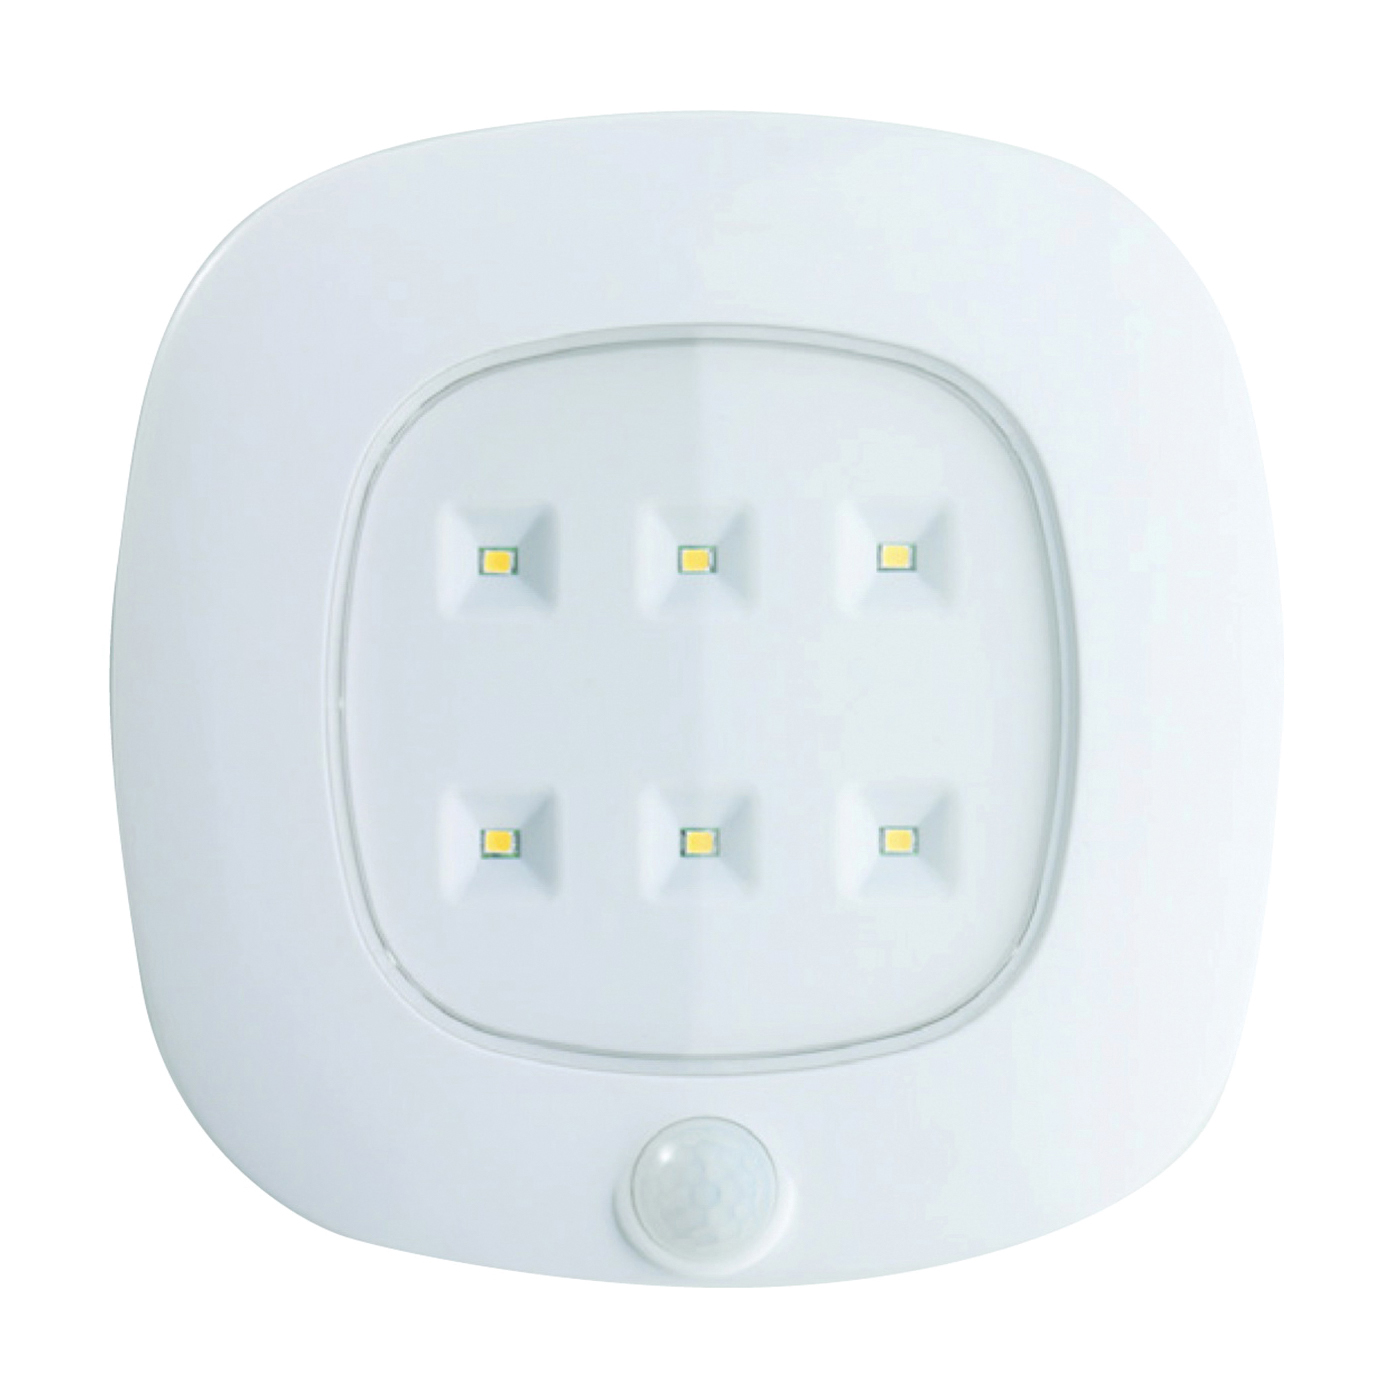 Picture of Fulcrum 30028-308 Ceiling Light, 120 VAC, C Battery, 6-Lamp, LED Lamp, 125 Lumens, White